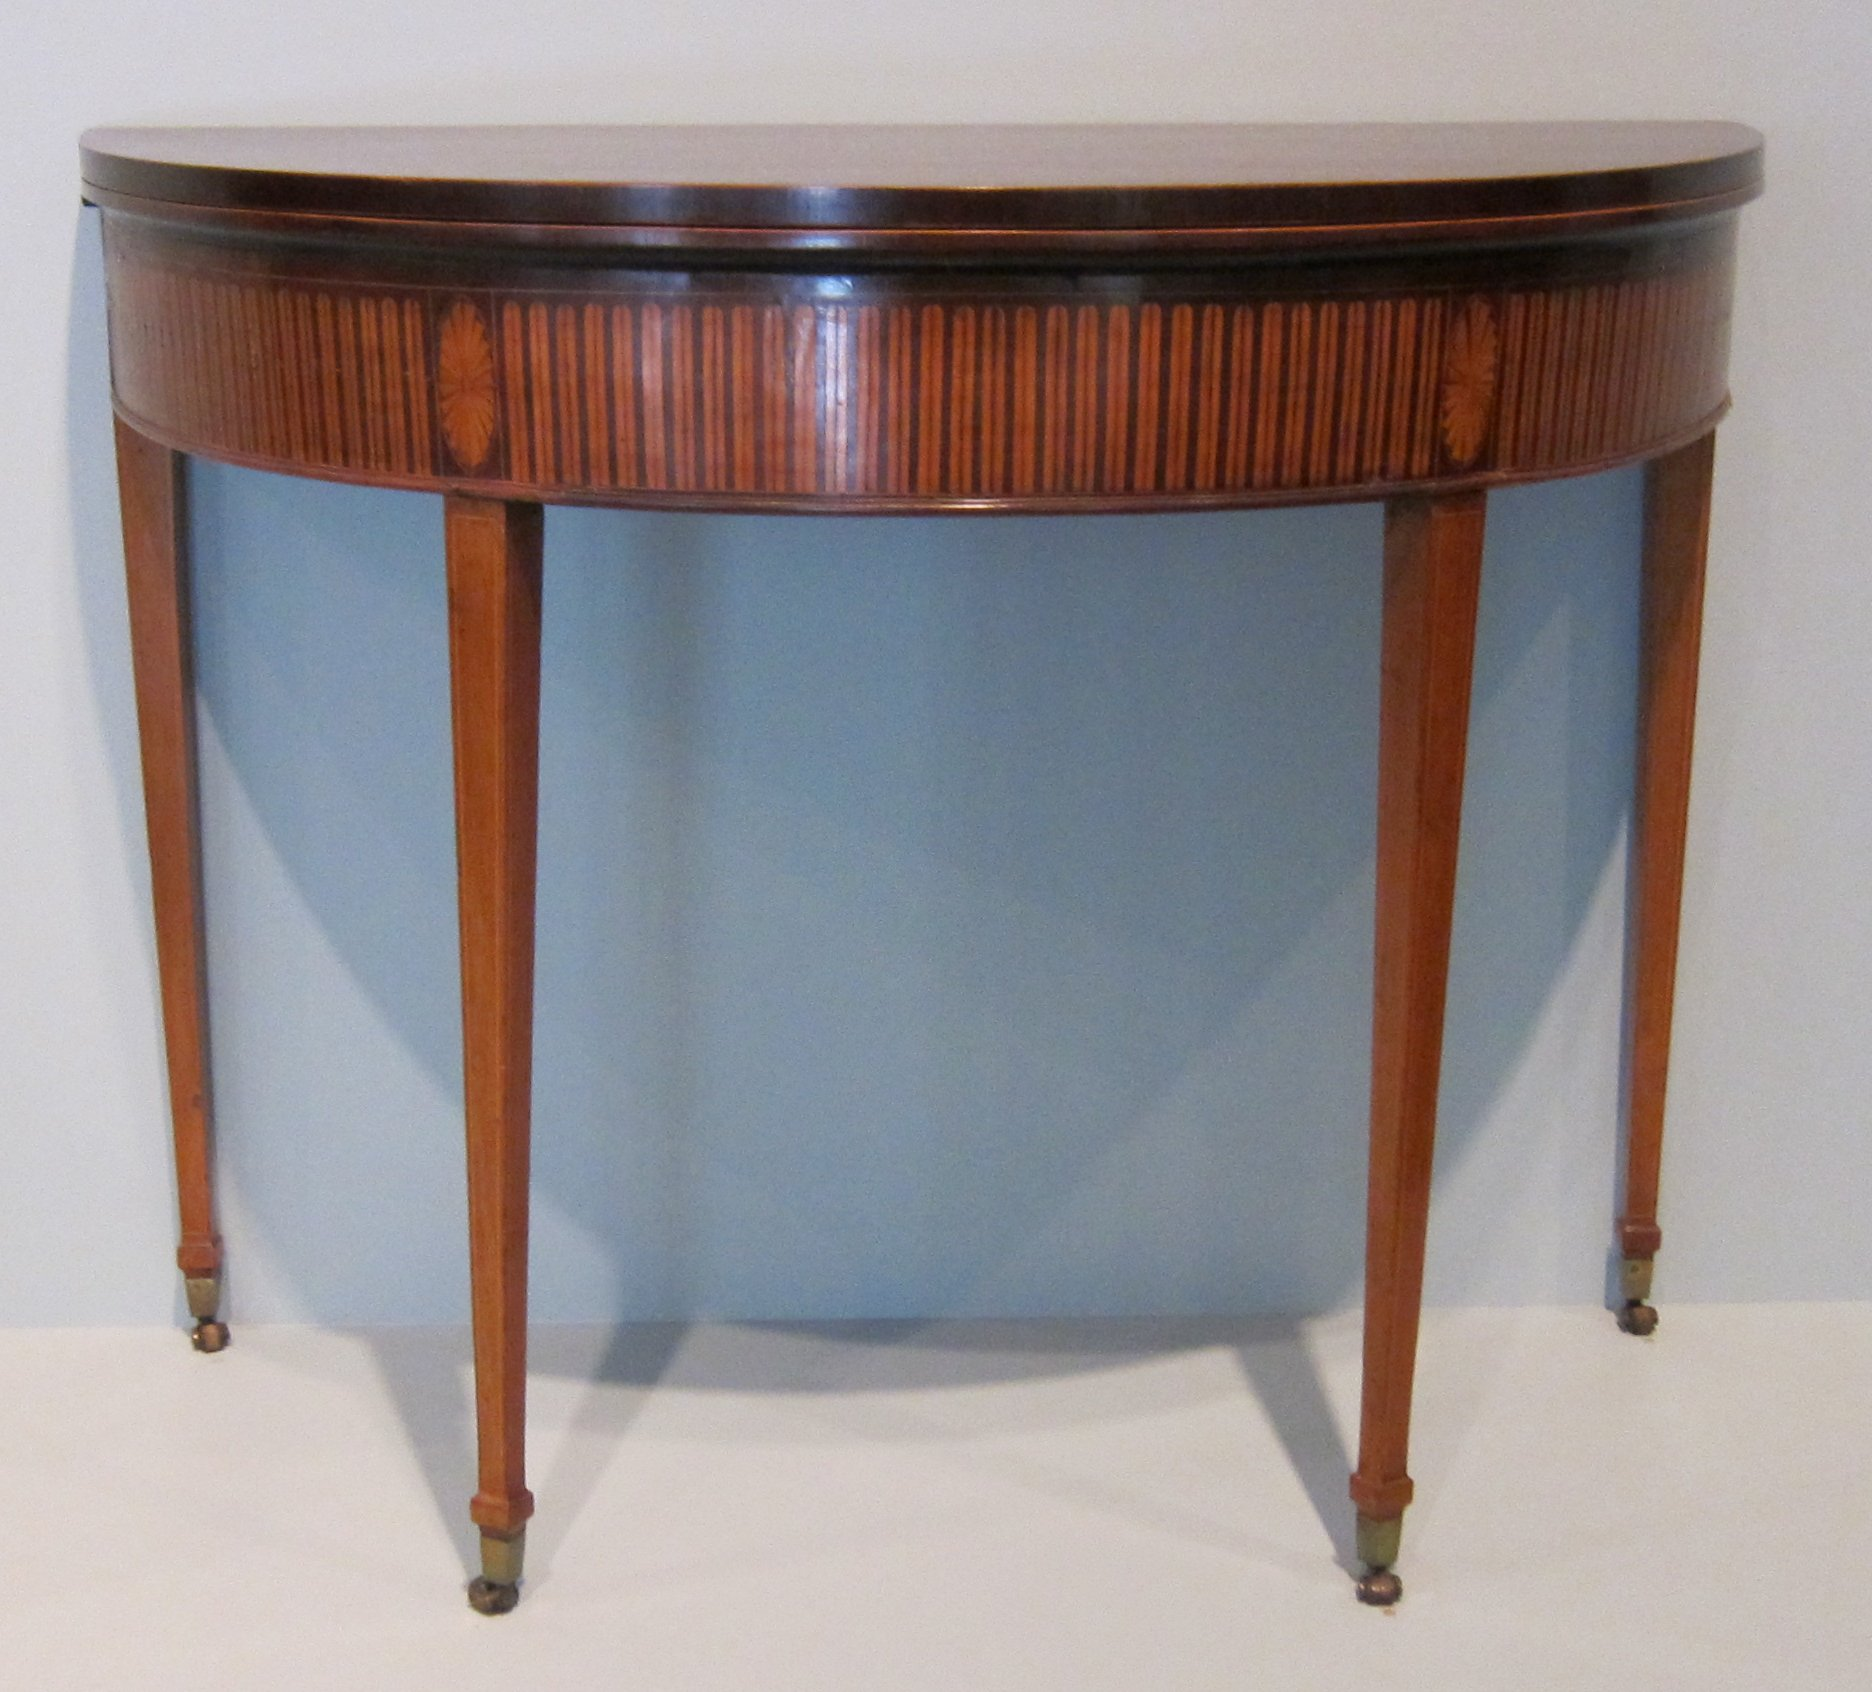 File:English Demilune Card Table, C. 1790 1805, Mahogany With Satinwood